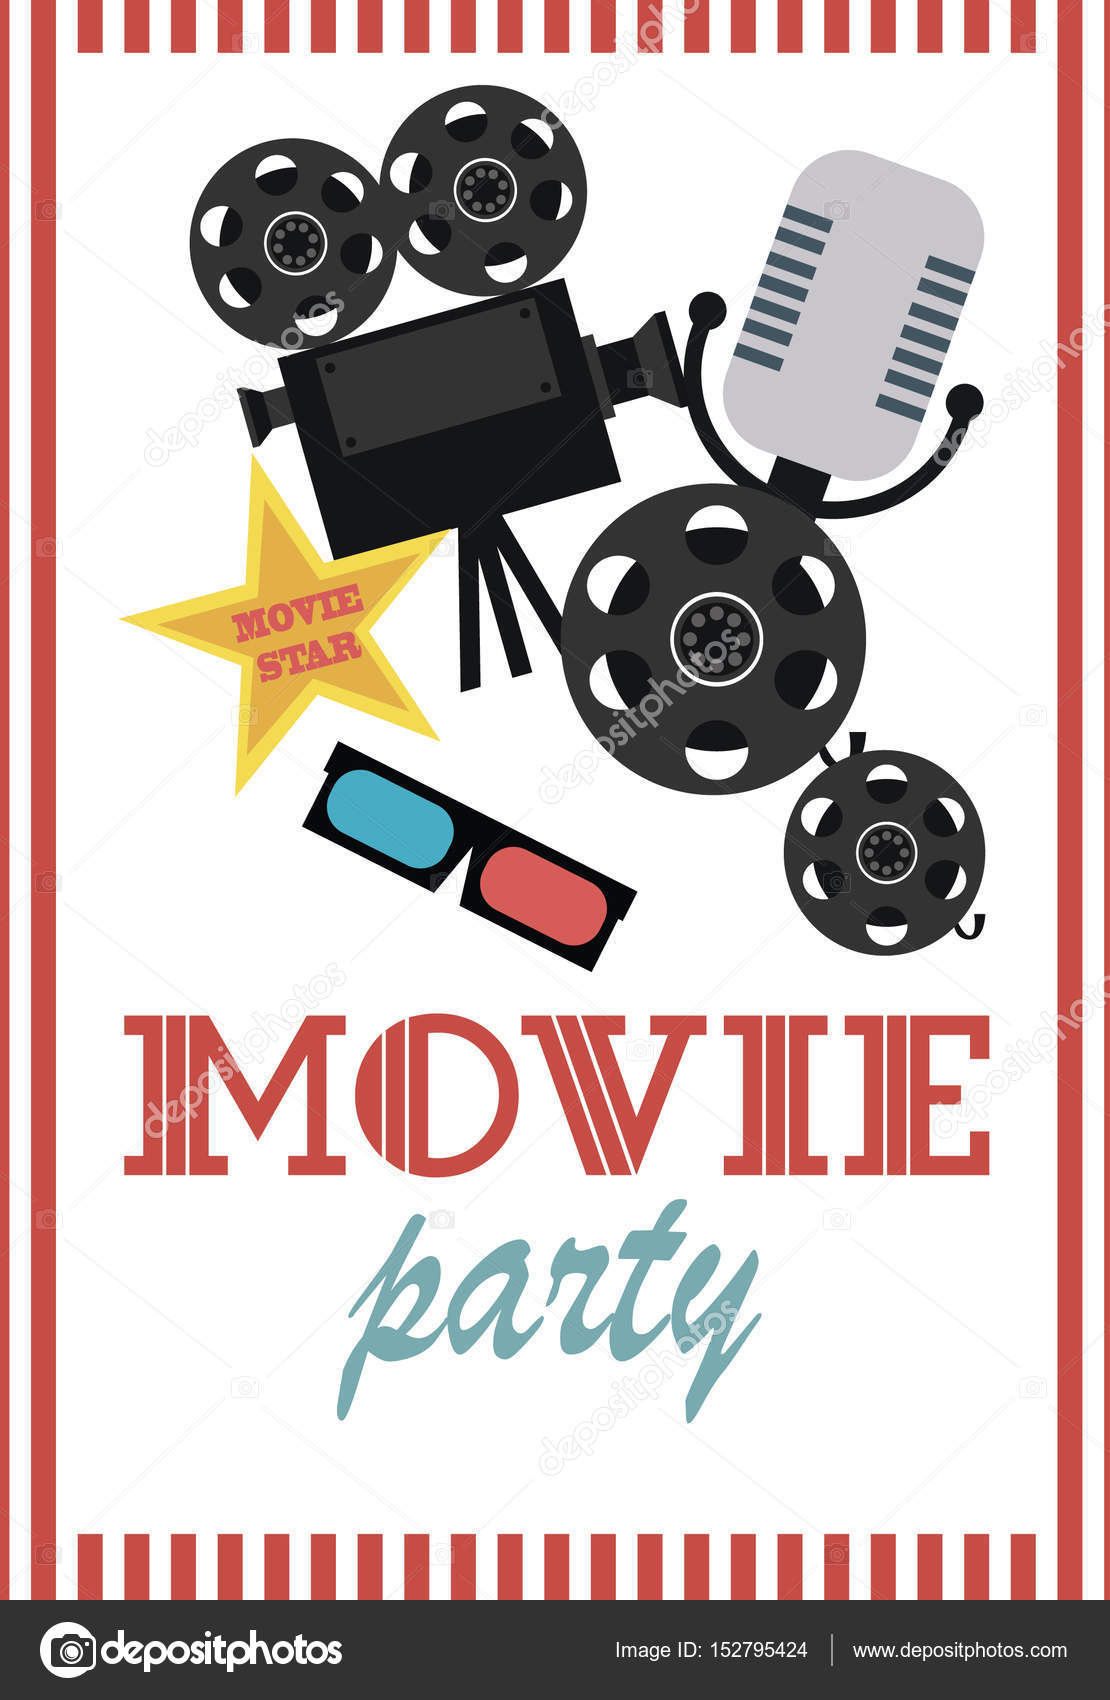 Movie birthday party invitation card stock vector vissay 152795424 movie birthday party invitation card stock vector stopboris Image collections